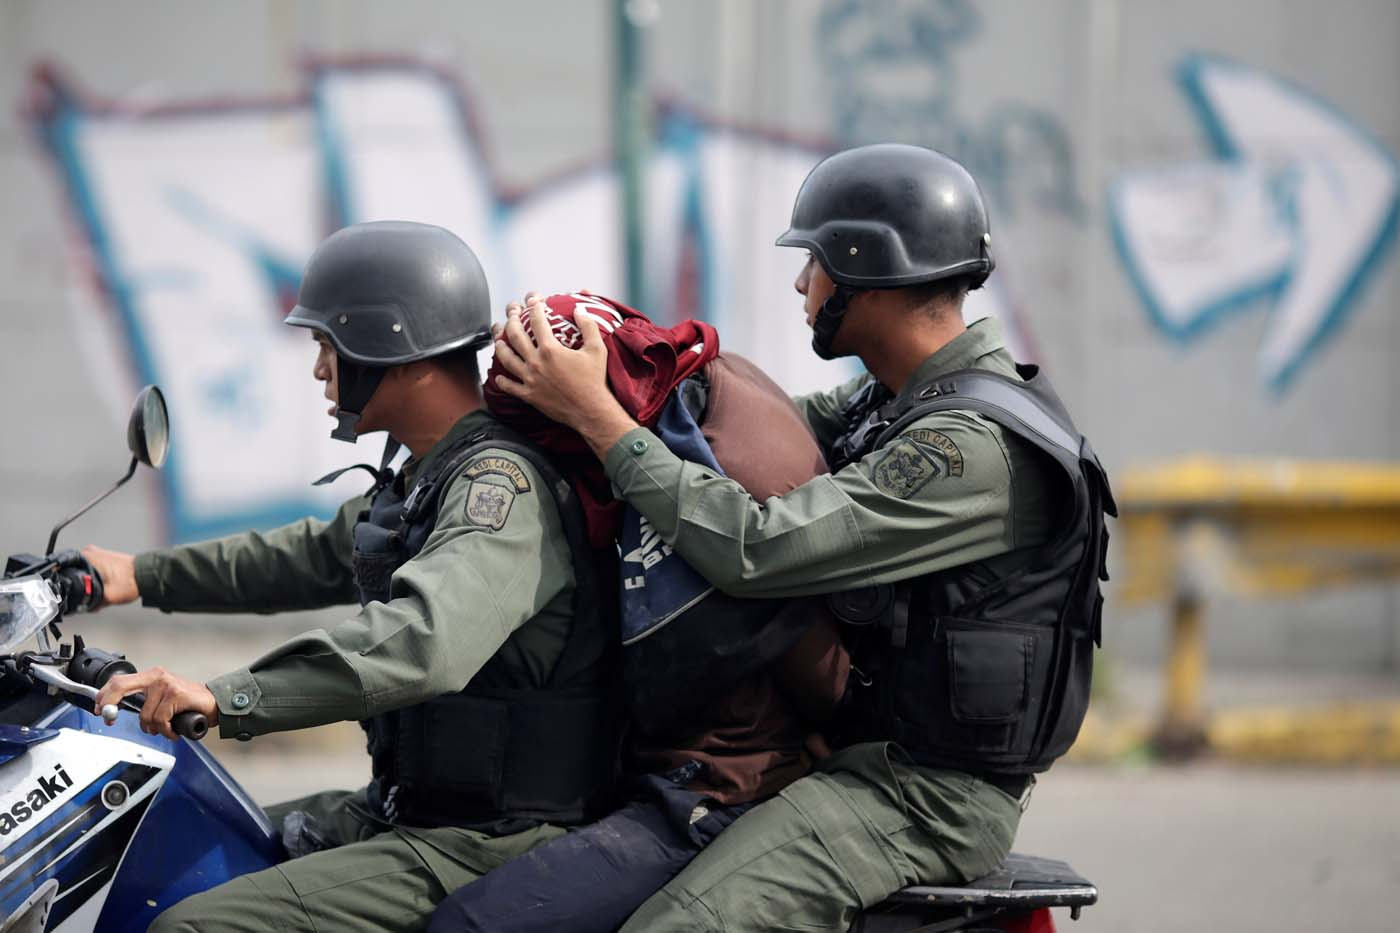 A demonstrator is detained at a rally during a strike called to protest against Venezuelan President Nicolas Maduro's government in Caracas, Venezuela July 27, 2017 . REUTERS/Ueslei Marcelino